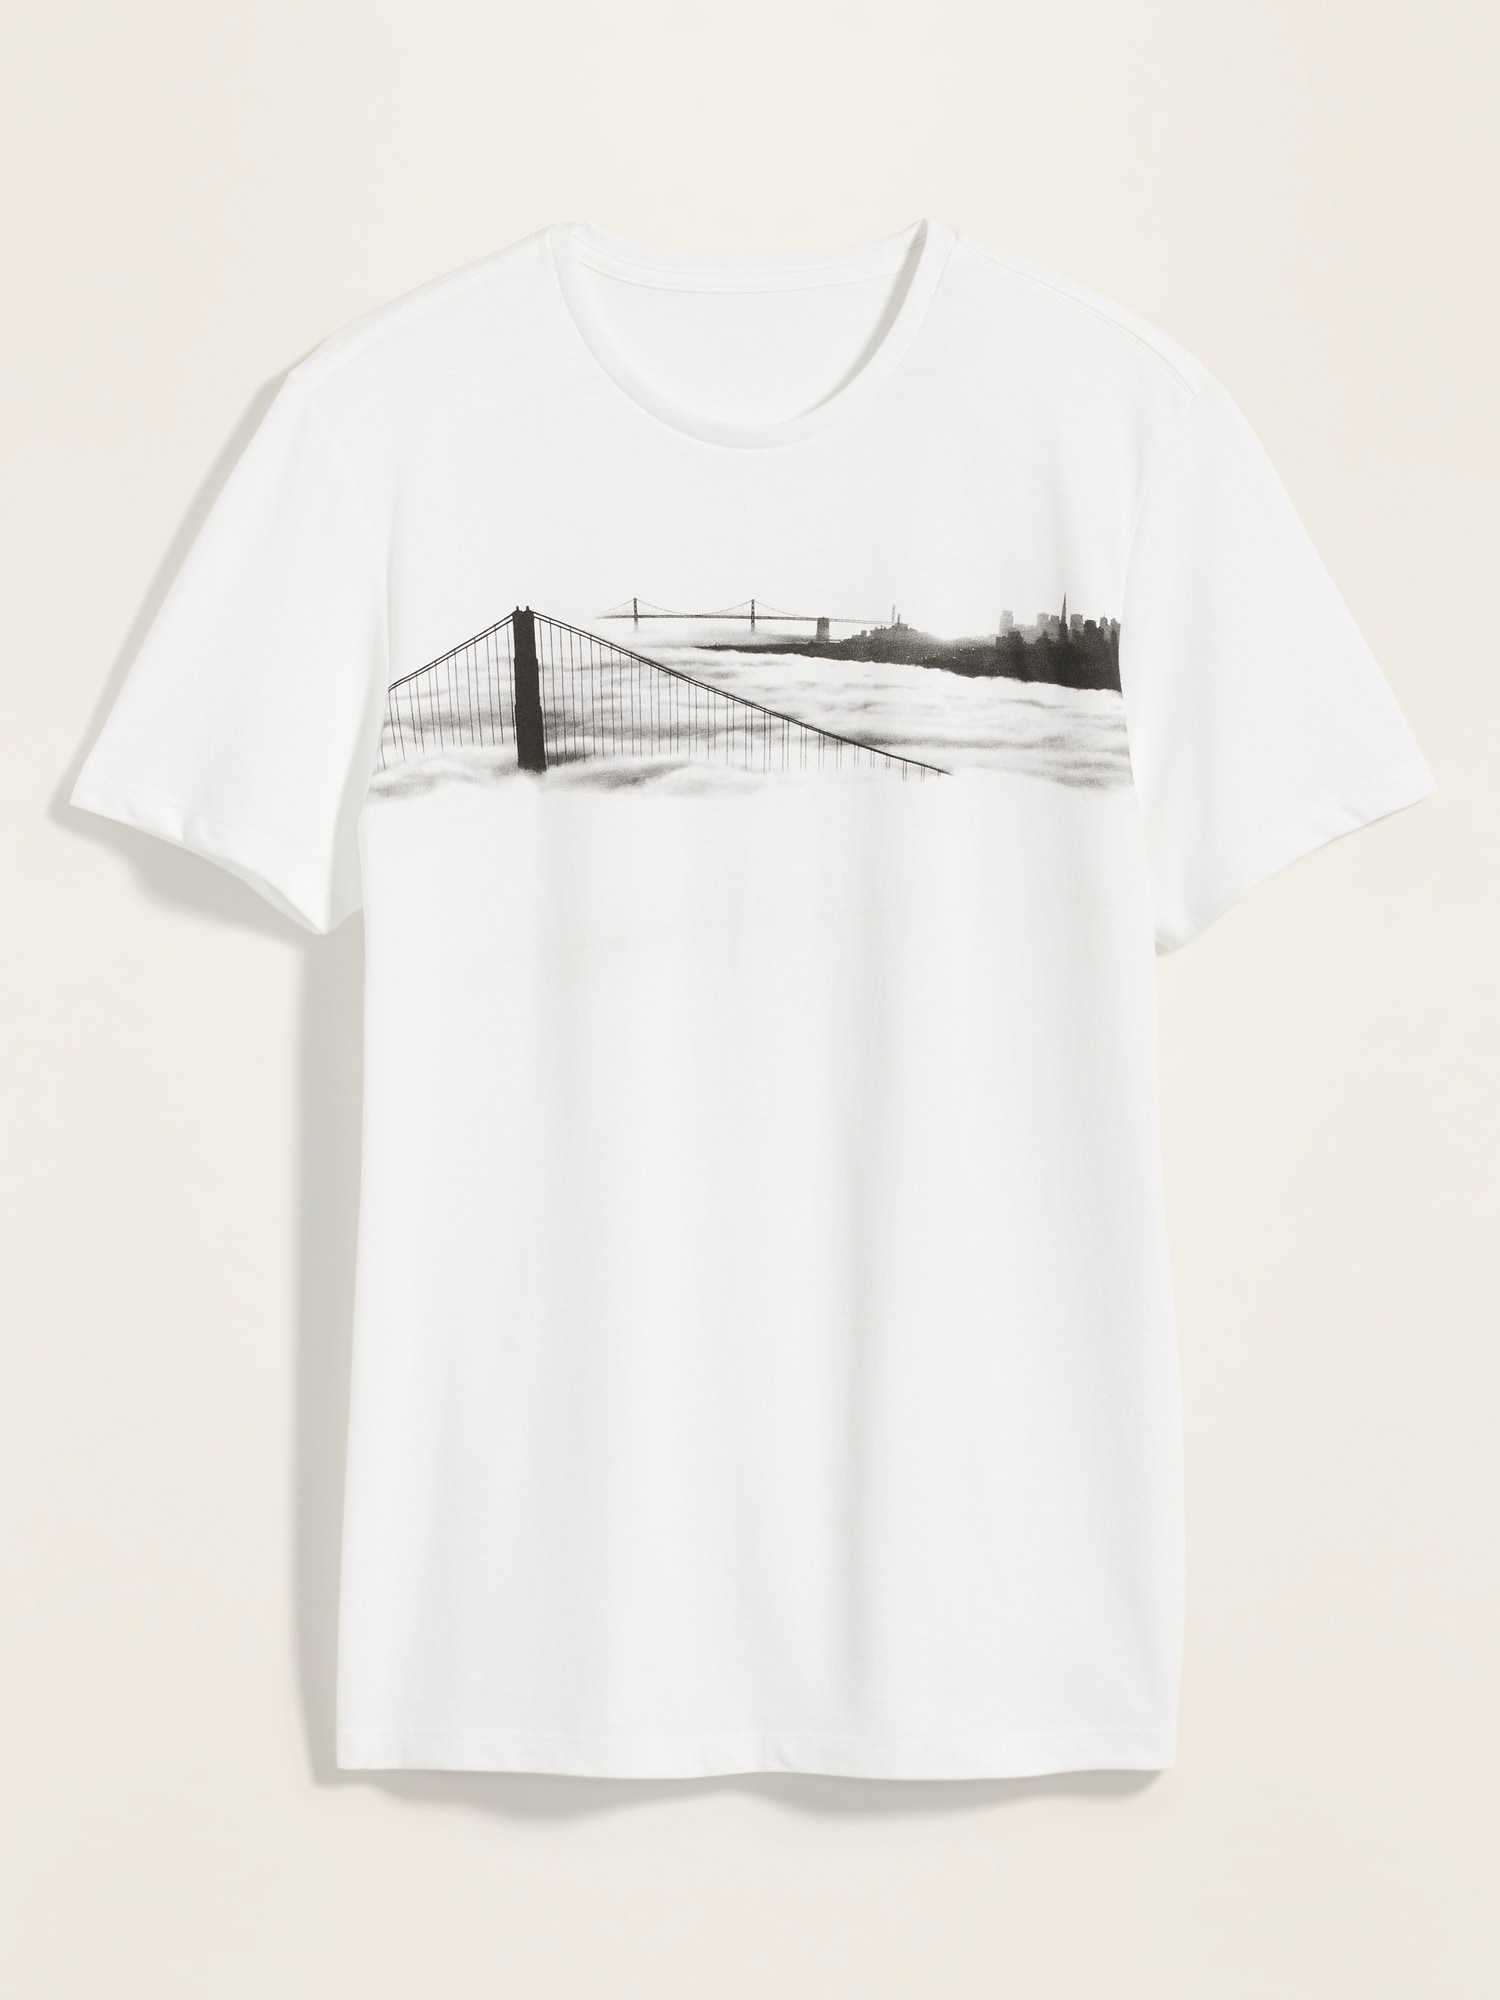 *Hot Deal* Soft-Washed Graphic Crew-Neck Tee for Men